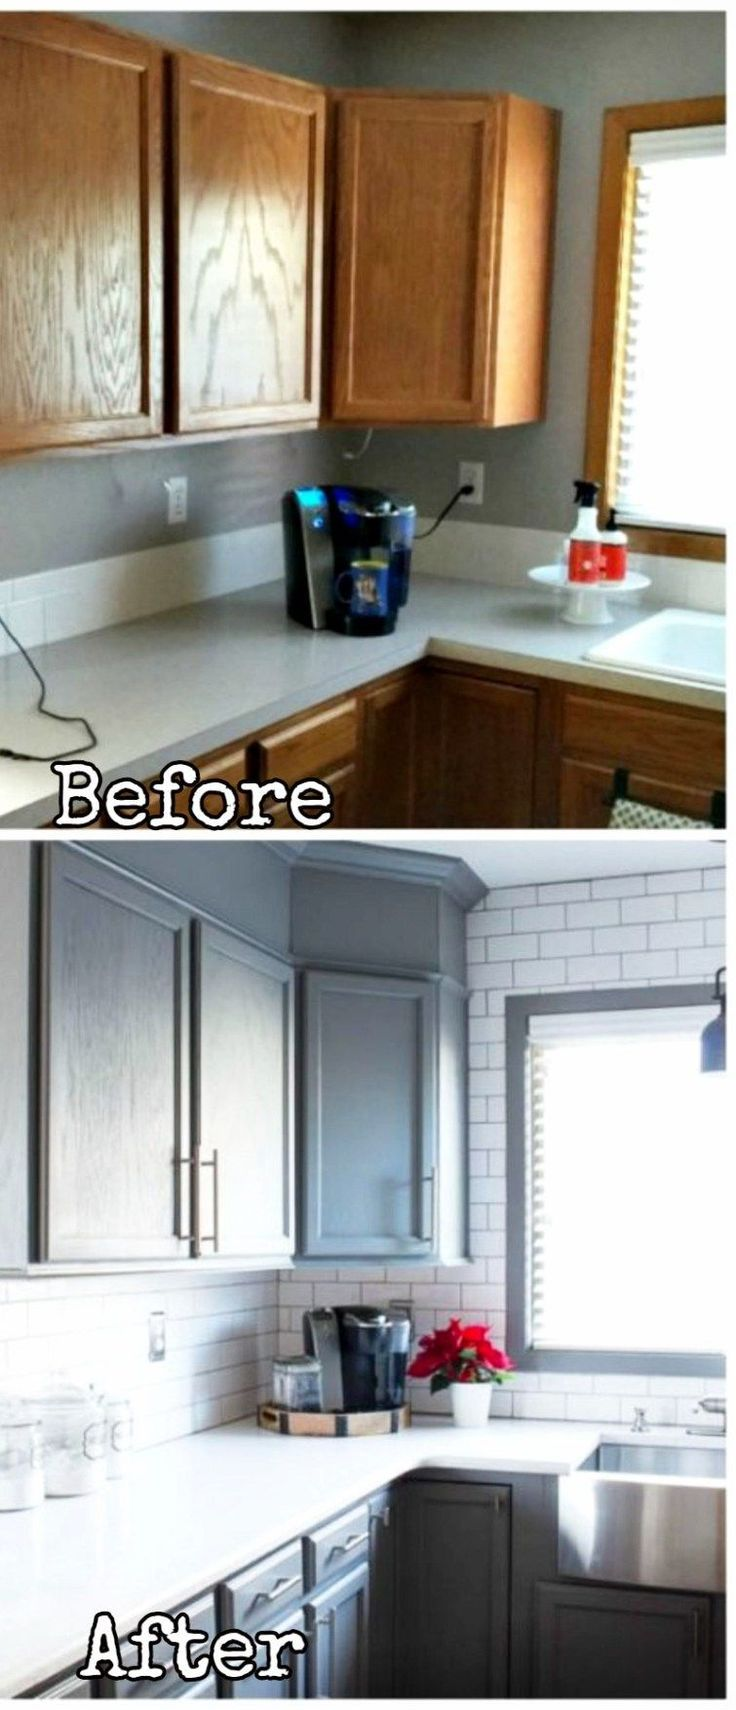 Small Kitchen Remodels Before and After PICTURES To Drool Over! #kitchenremodelsmall